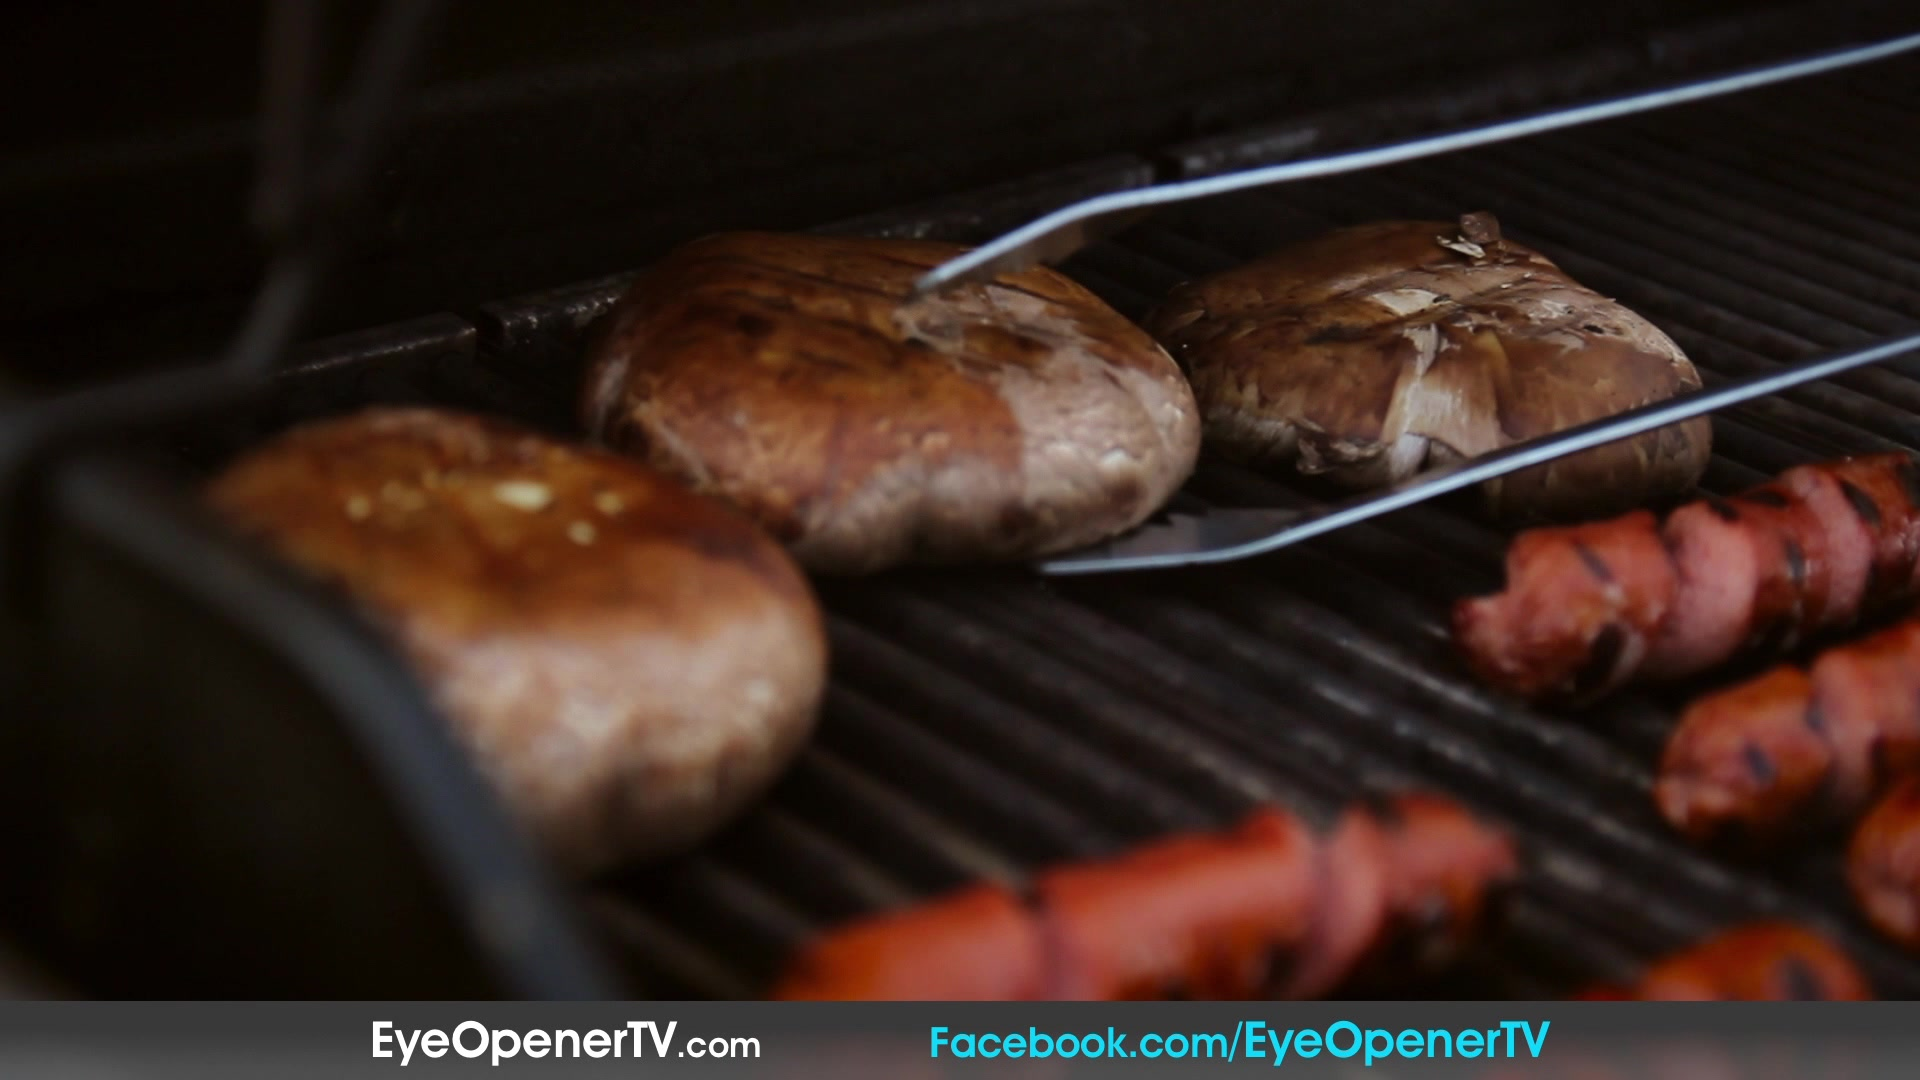 Try Stuffed Cheeseburgers & Spiral Hot Dogs For Your 4th Of July BBQ